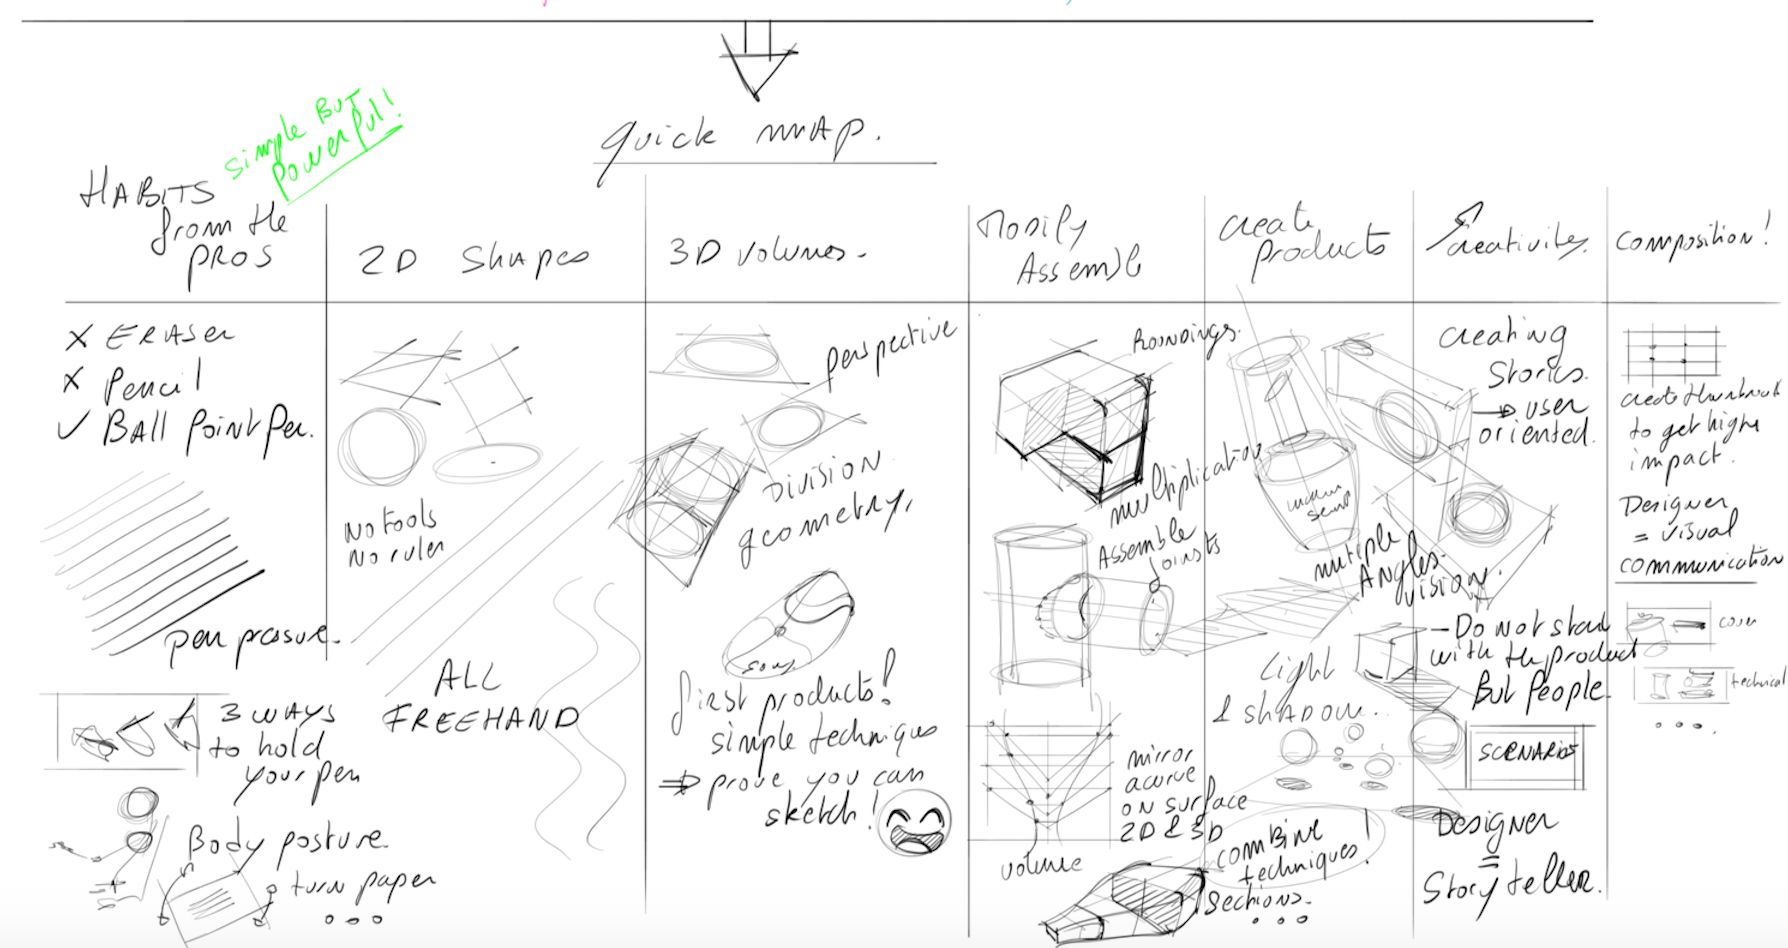 Quick map sketching fundamentals.png